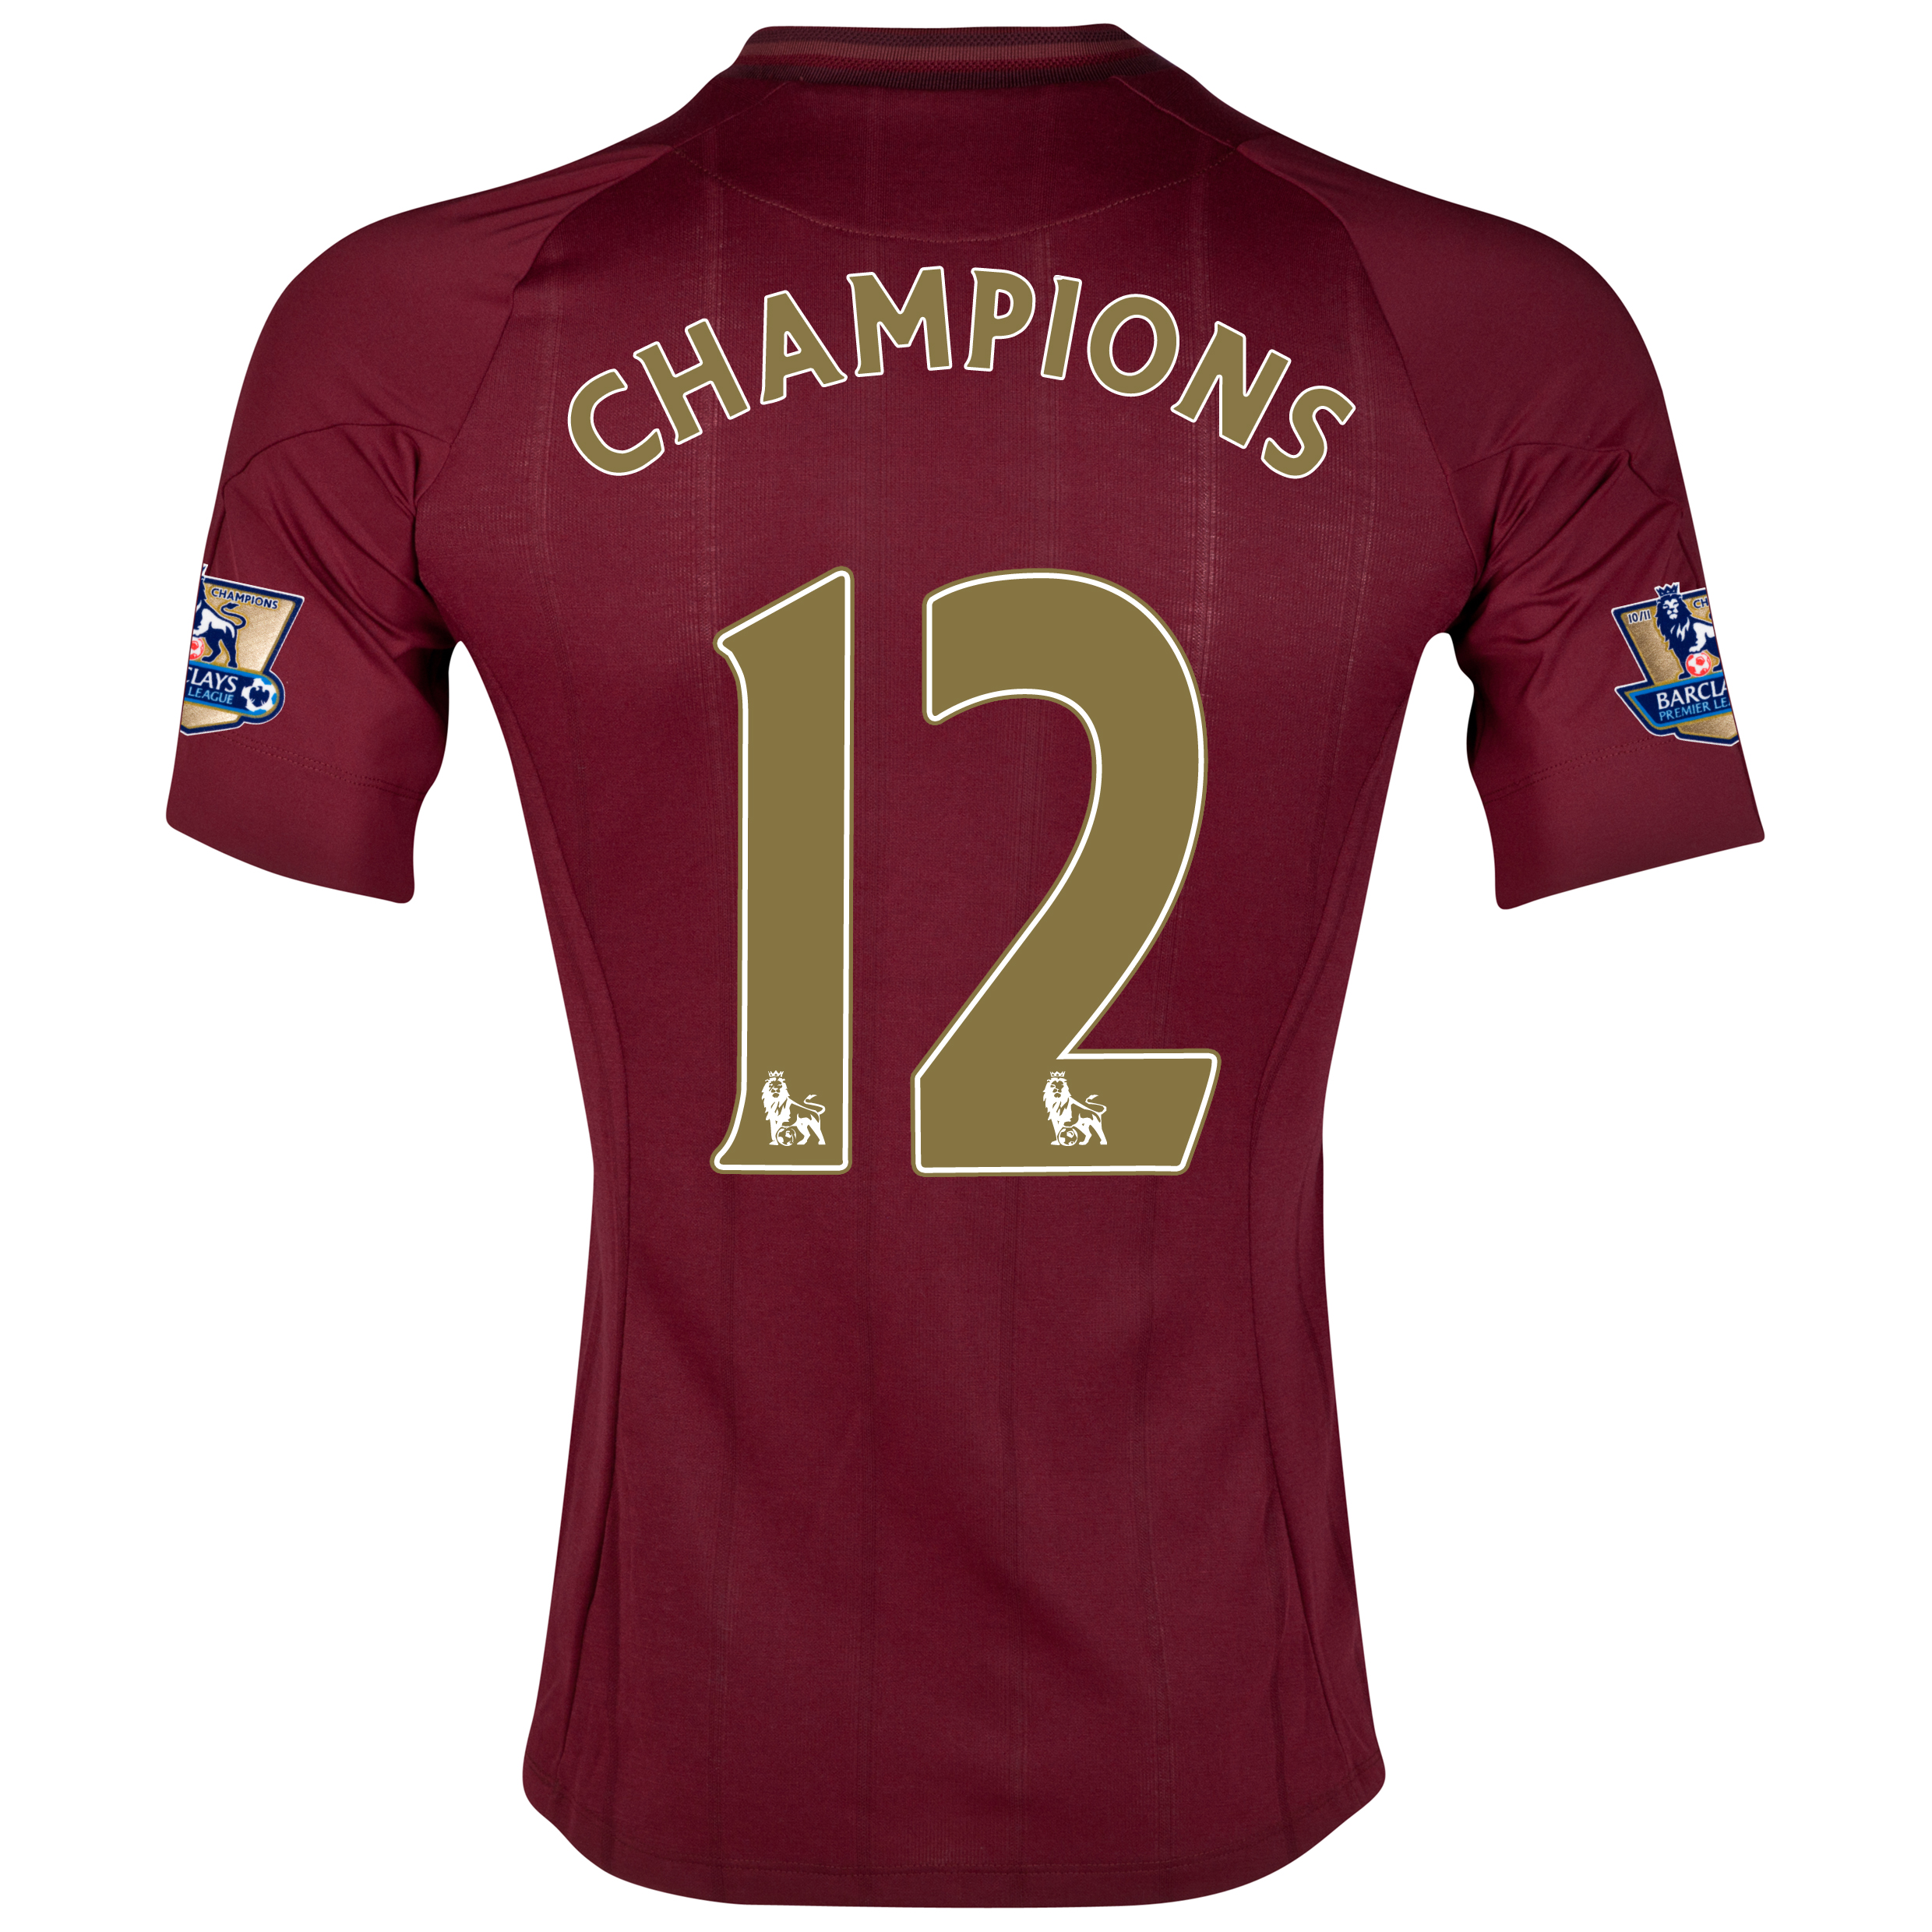 Manchester City Away Shirt 2012/13 with Champions 12 printing and Premier League Champions Badges